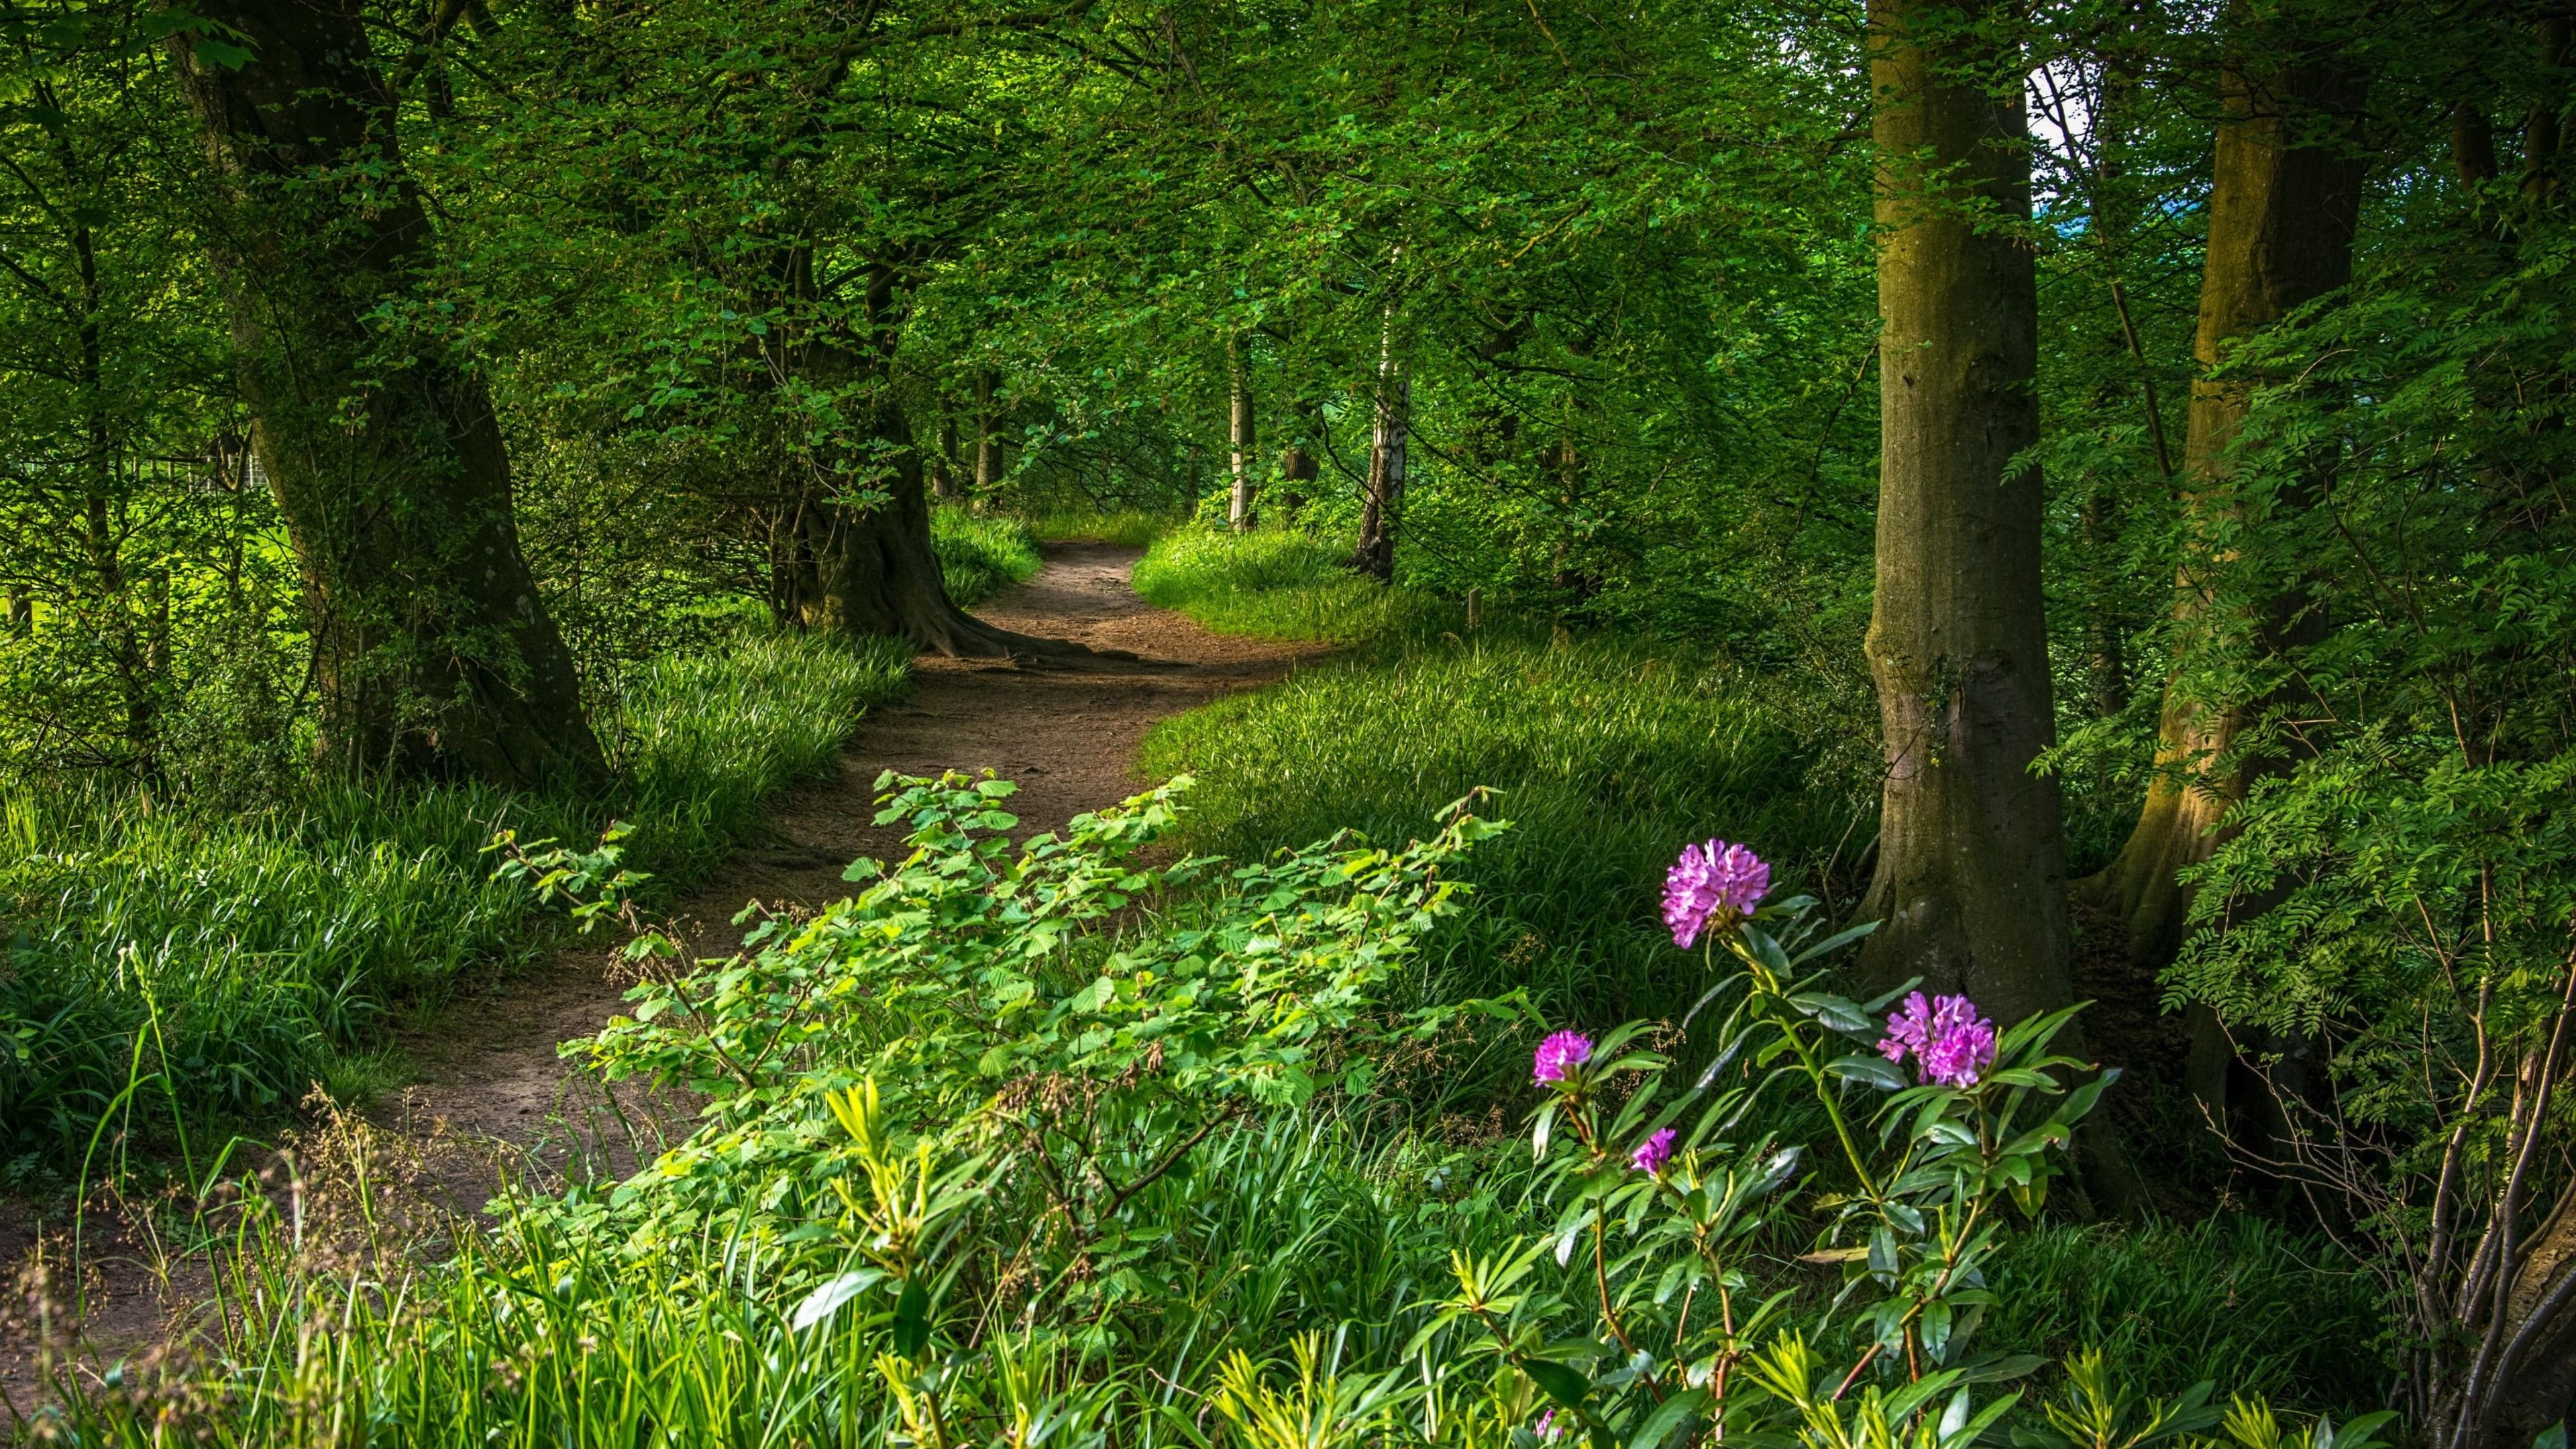 Path Forest Path Green Forest Green Leaves Pathway Nature Woodland Purple Flower Flower Grass Plant Tree Forest Path Pink Flowering Trees Green Leaves Nature path forest trees grass bushes